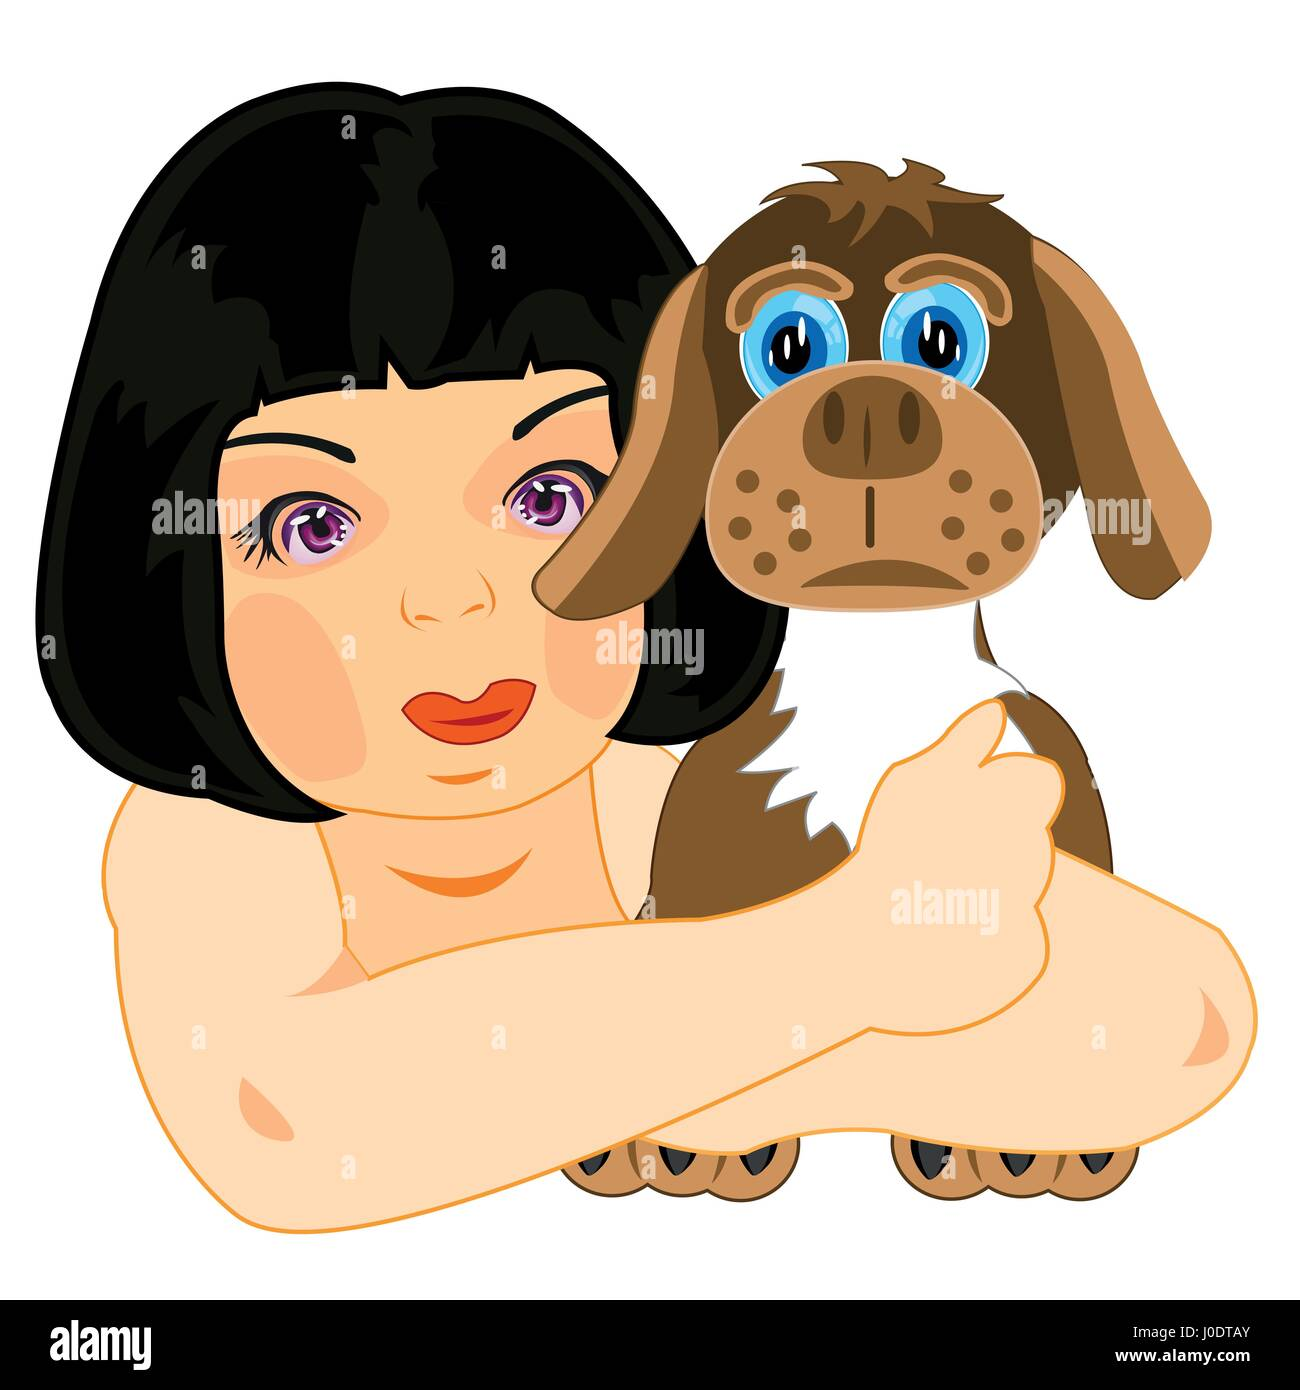 Girl with dog - Stock Vector